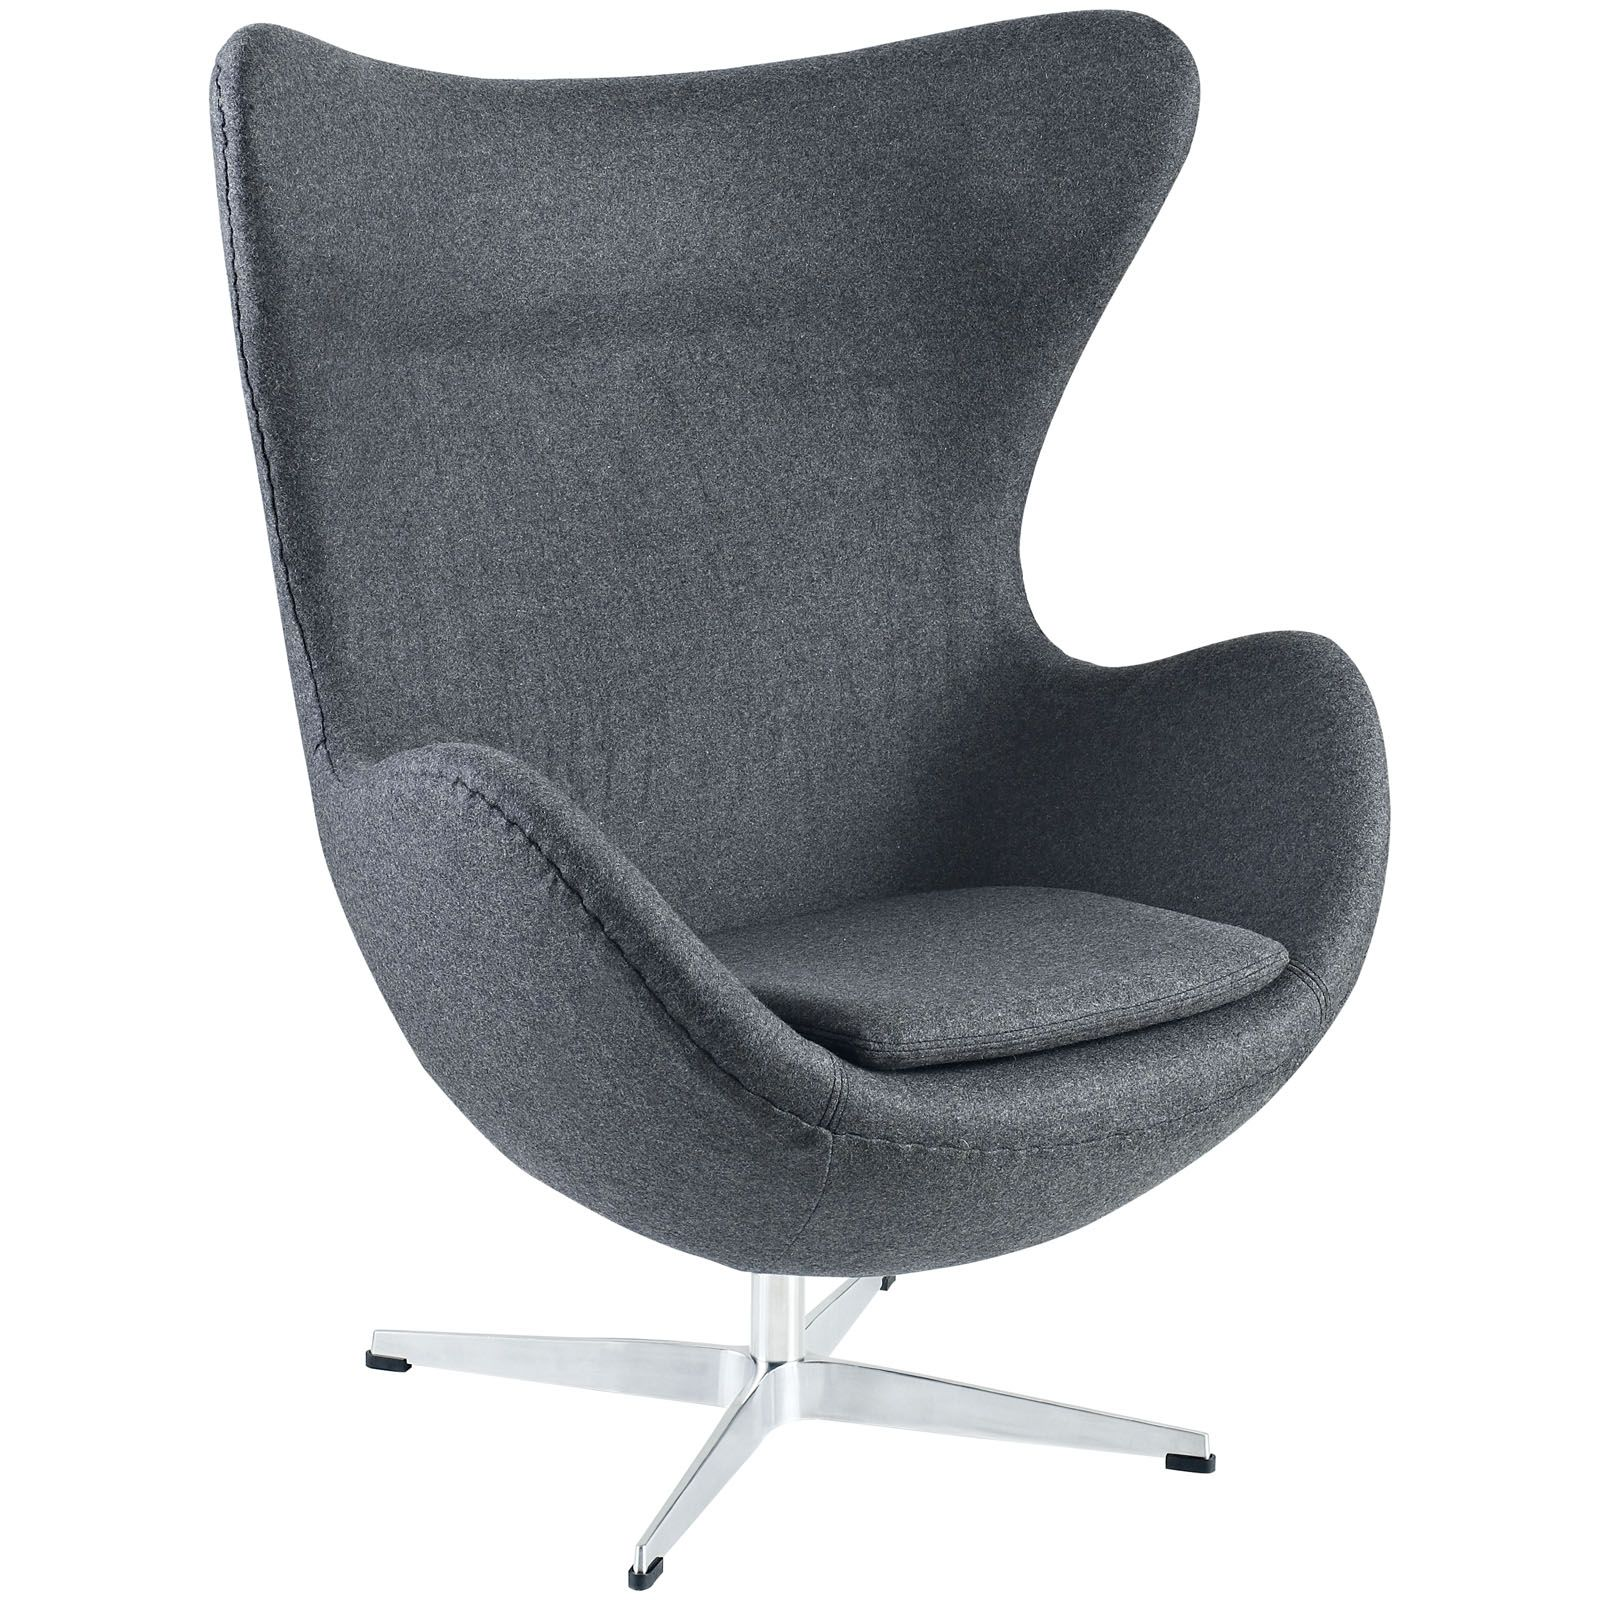 Egg Chair Replica Kopen.Egg Chair In Grey Flannel For Front Bedroom 699 I Like The